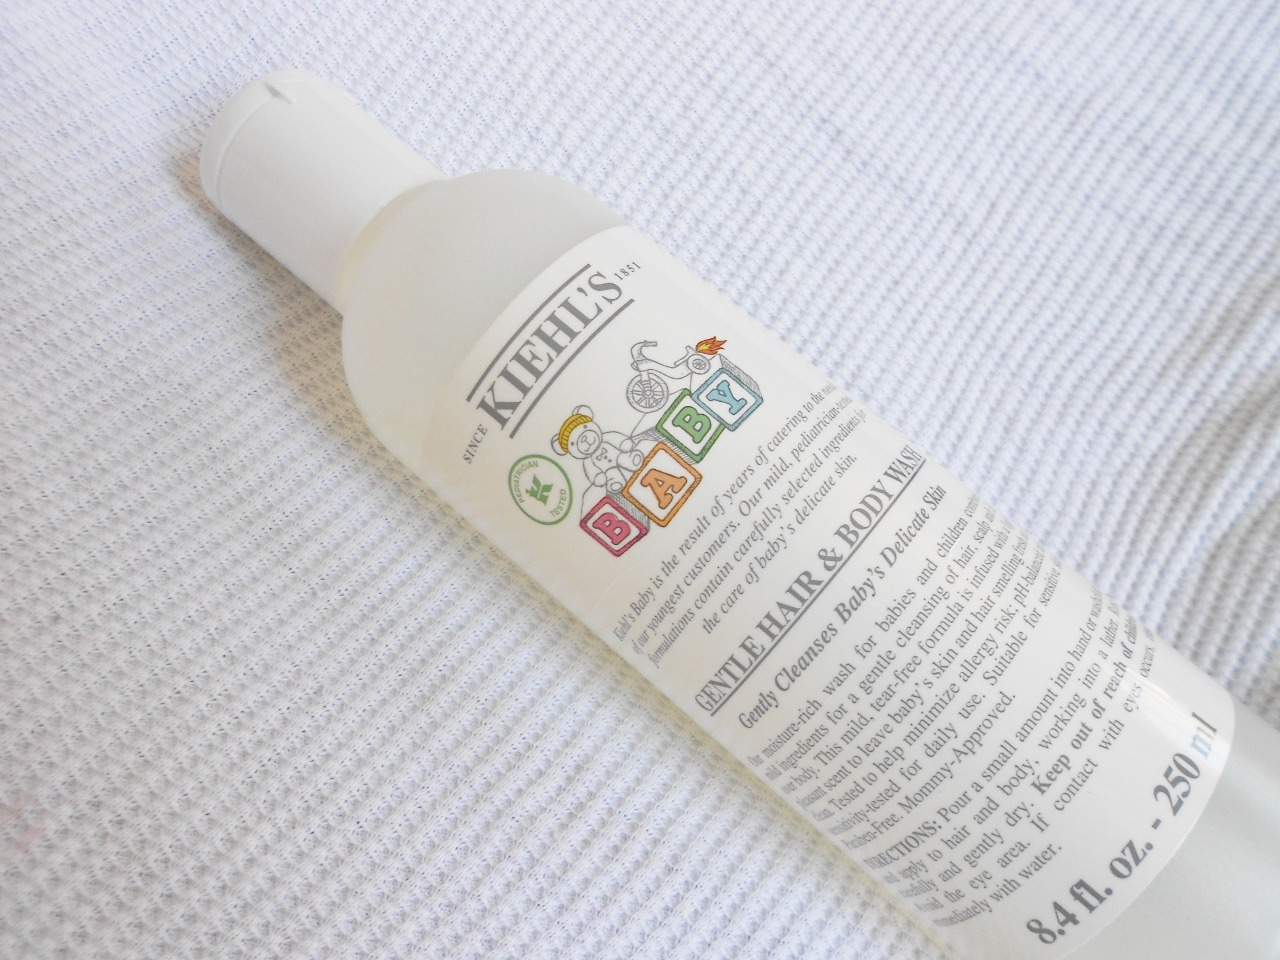 Kiehls Gentle Baby Hair and Body Wash - By Megan Kelly